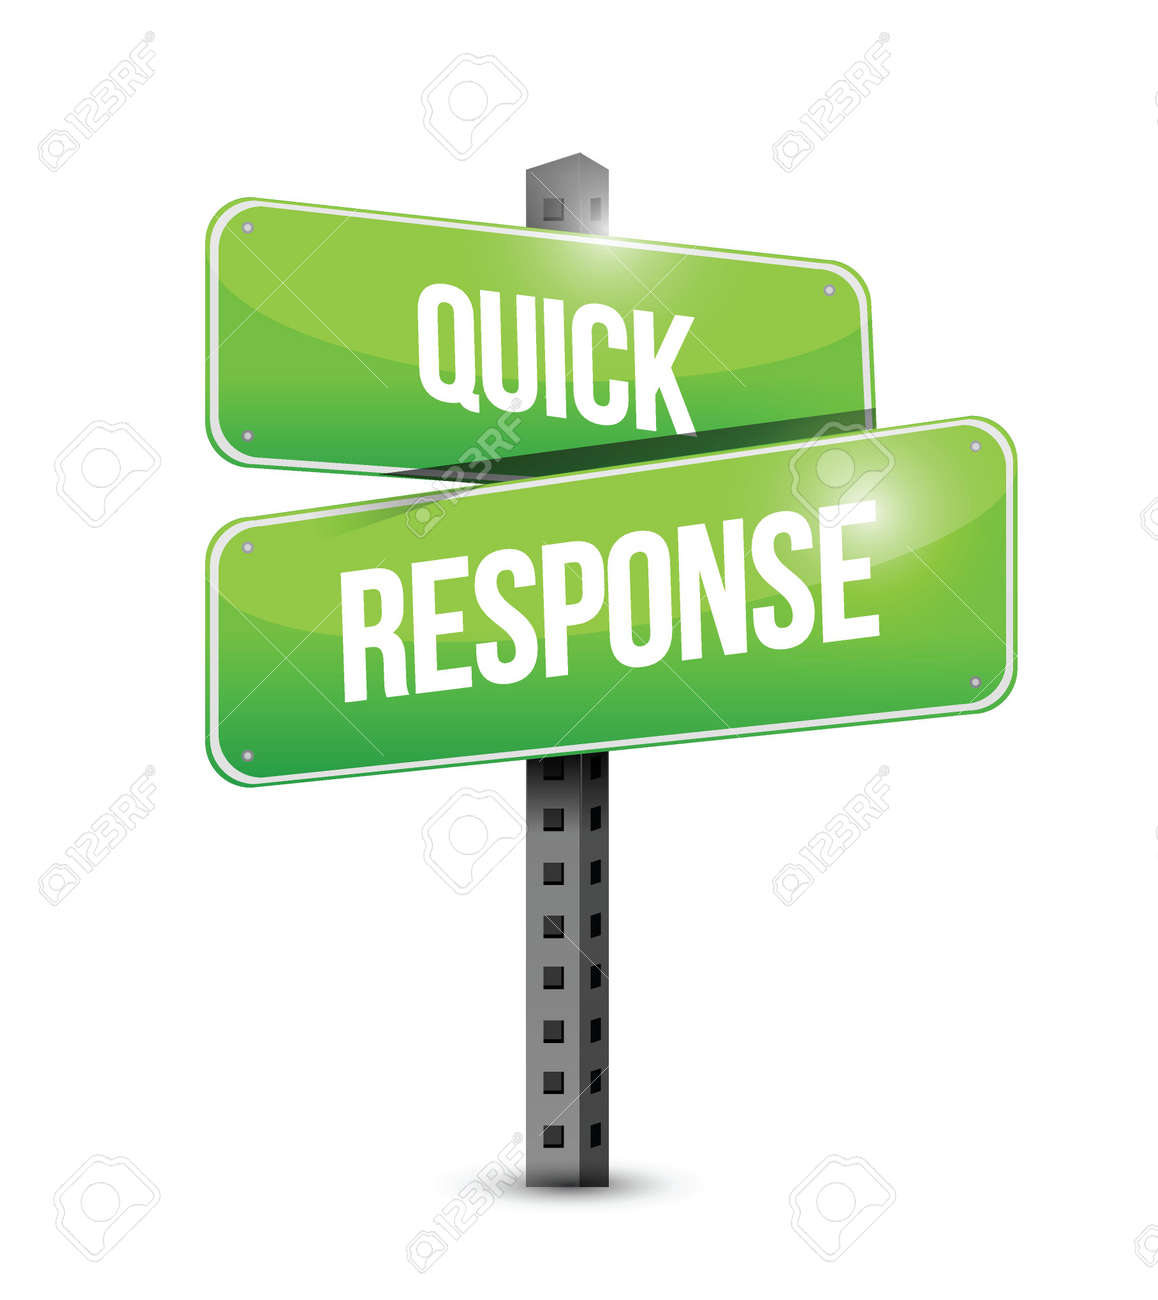 Quick Response Sign Illustration Design Over A White Background ...